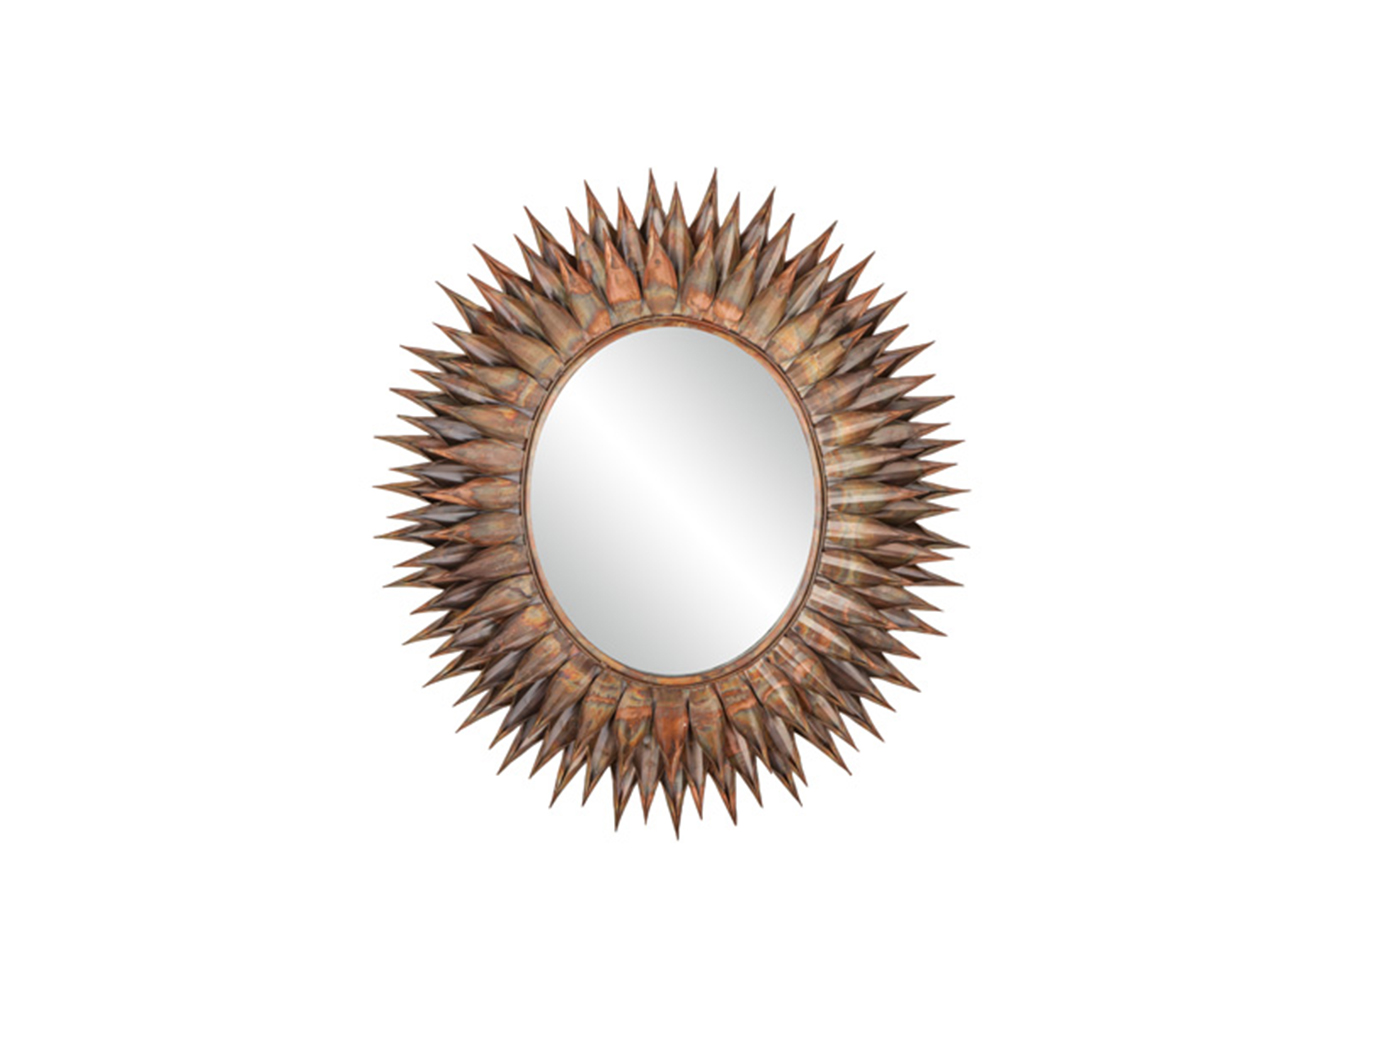 Copper/Bronze Oxodized Oval Mirror 40""